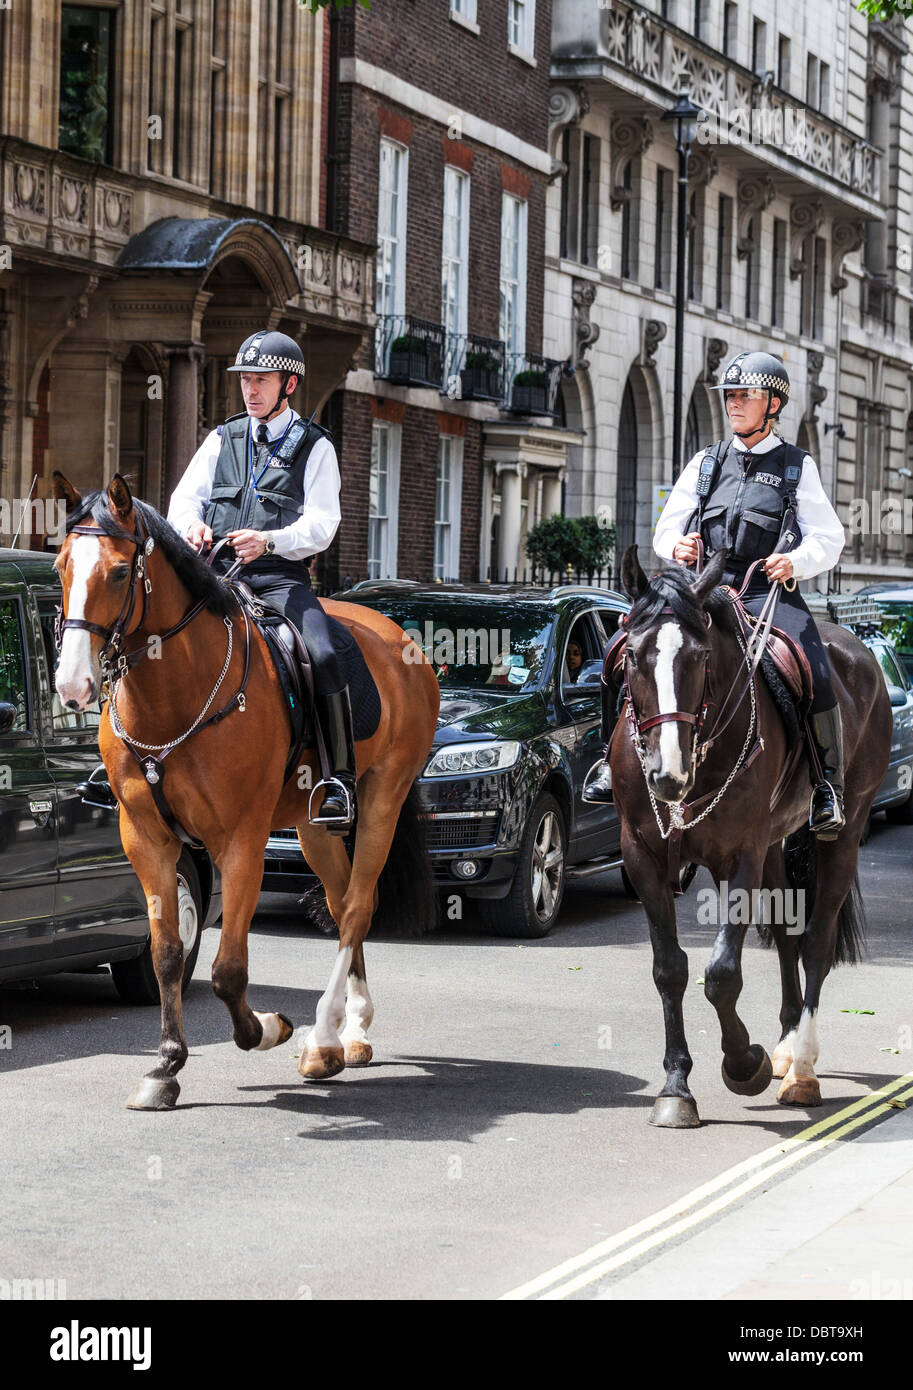 Two mounted British Metropolitan police officers on patrol, Great George Street, London, England, UK. - Stock Image